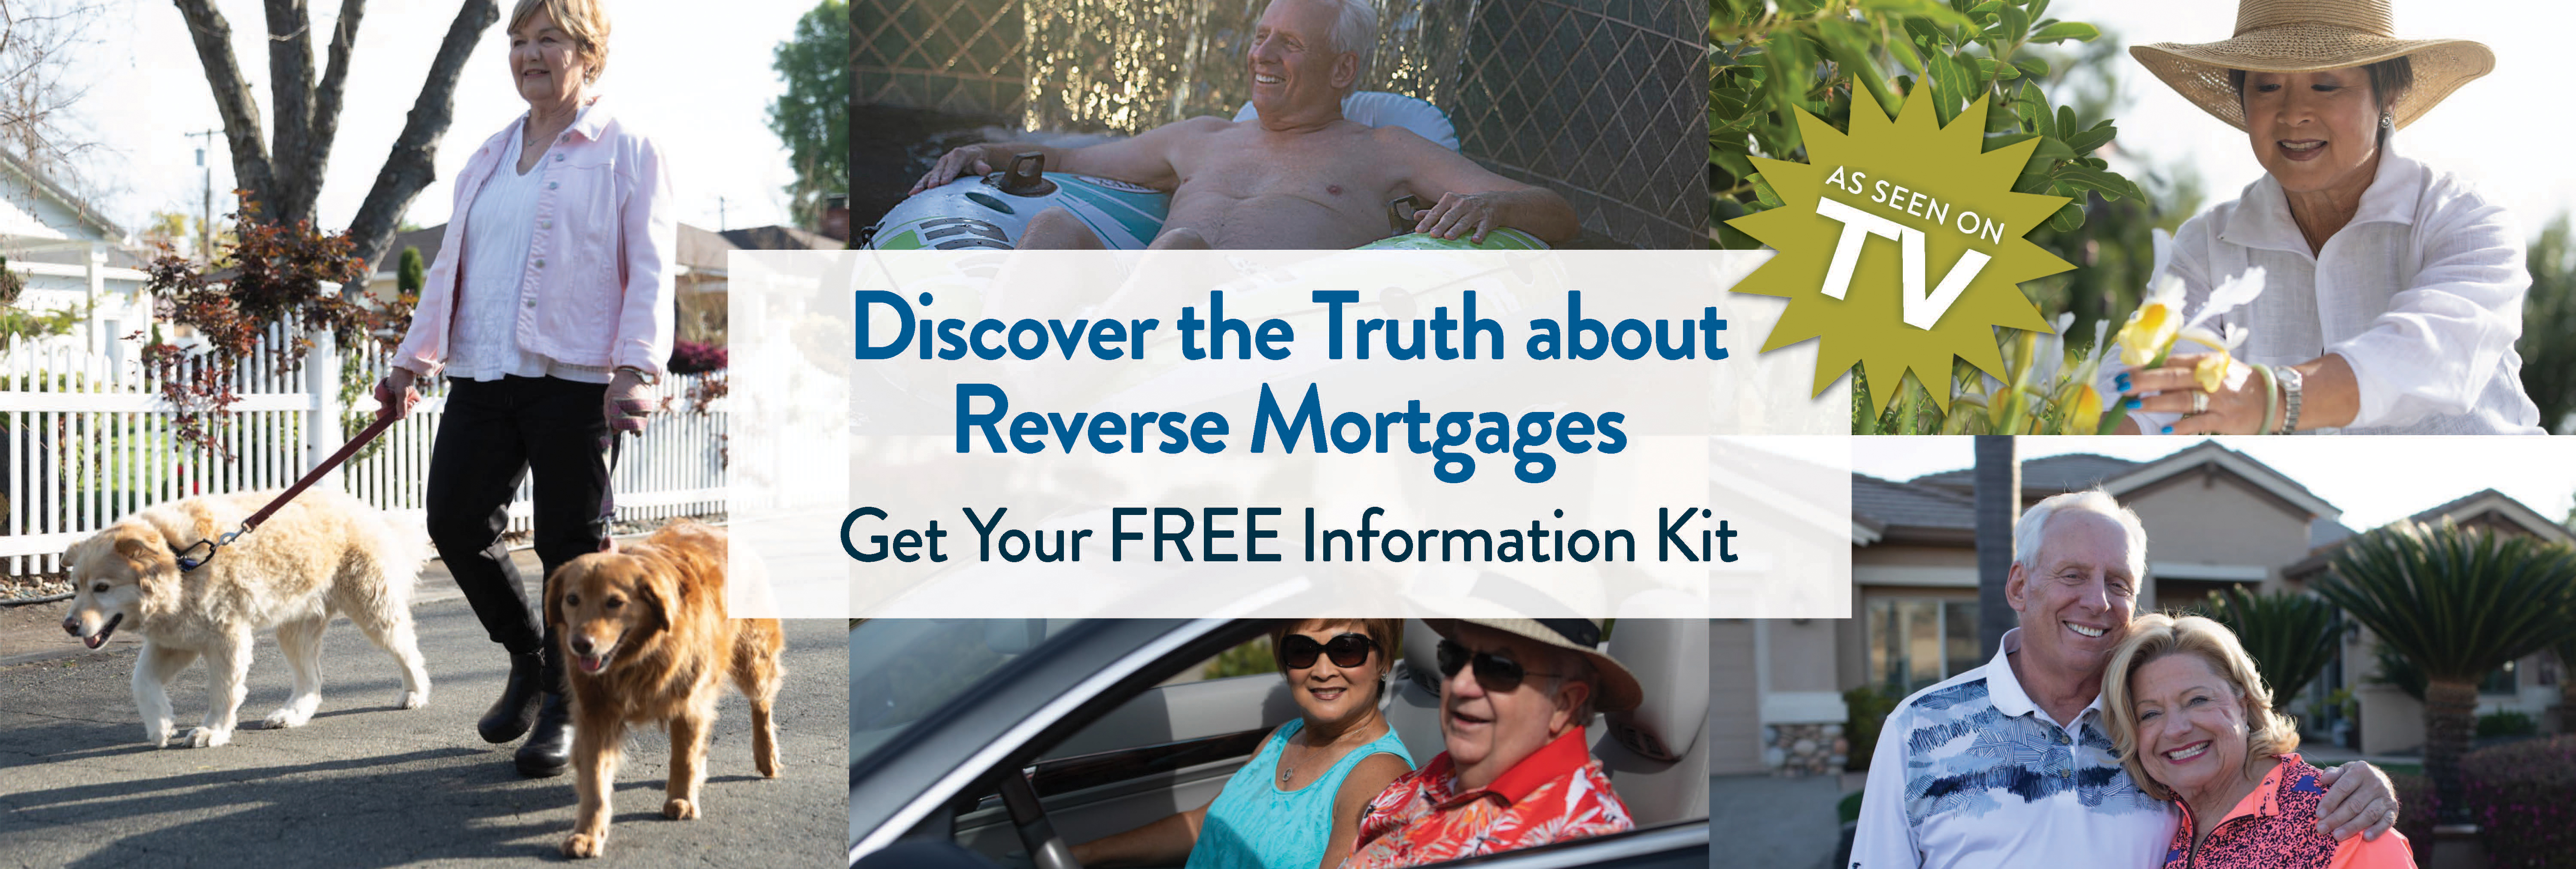 Discover the Truth about Reverse Mortgages